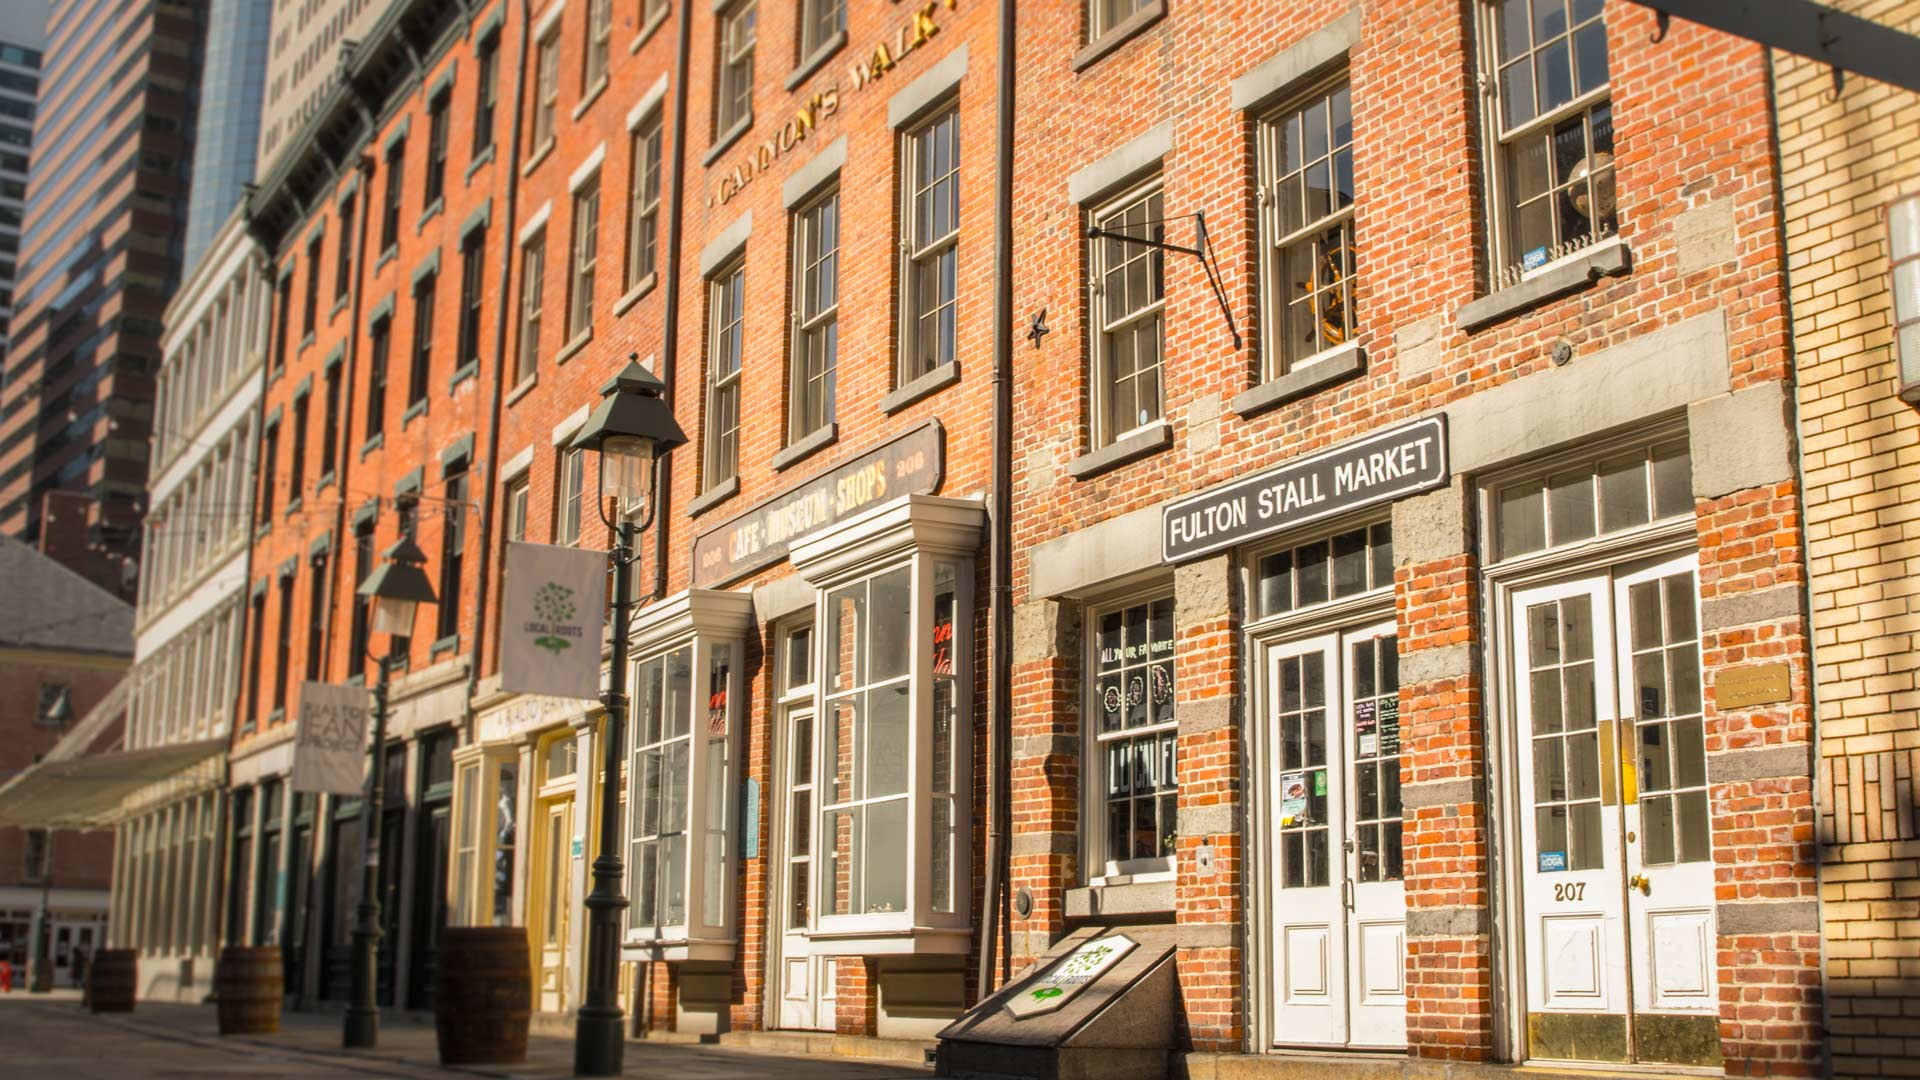 Our home at 207 Front St in Manhattan's historic Seaport District